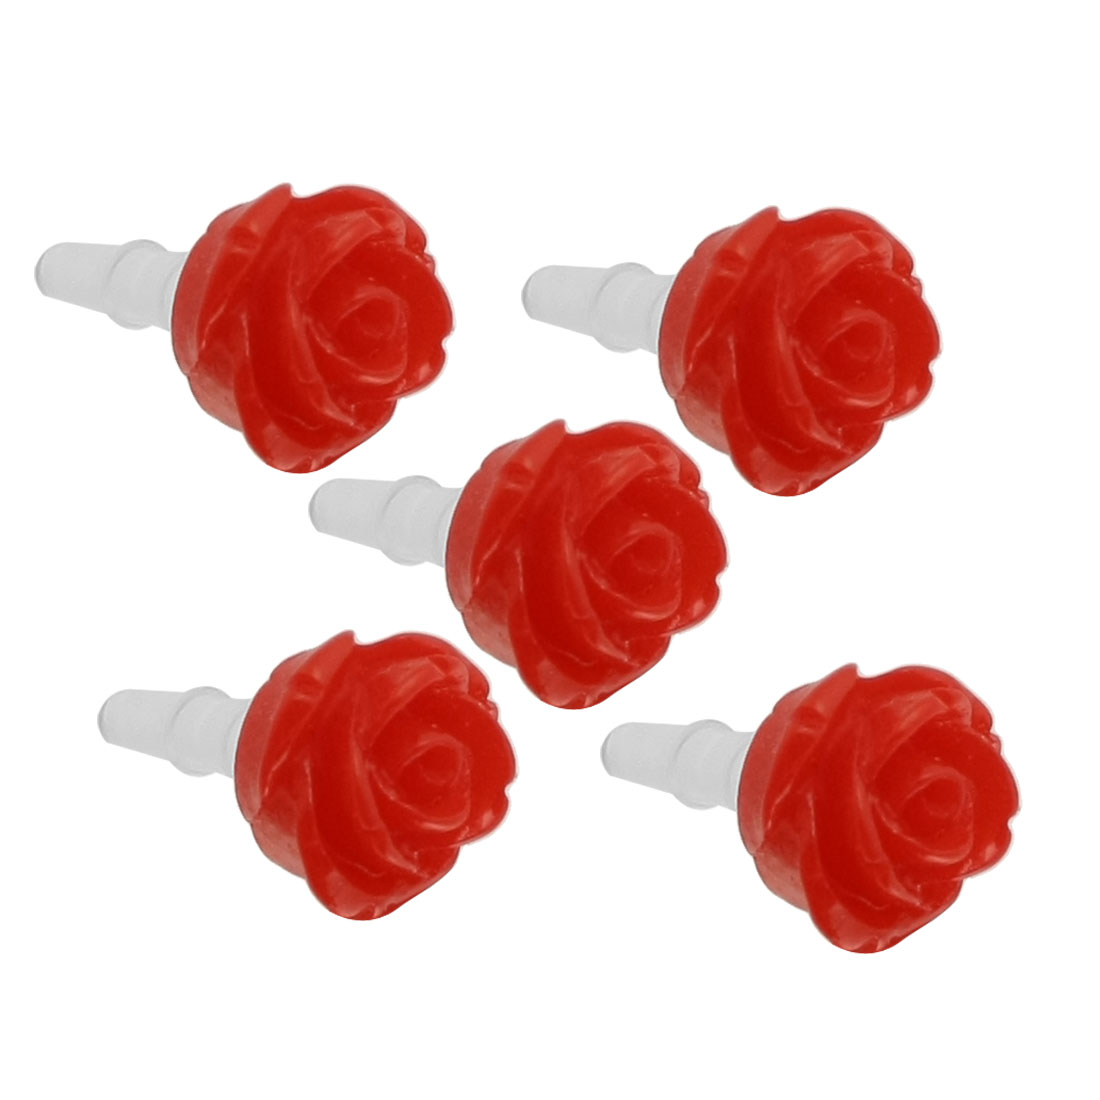 5 Pcs Red Rose 3.5mm Ear Cap Anti Dust Plug Stopper for Cell Phone